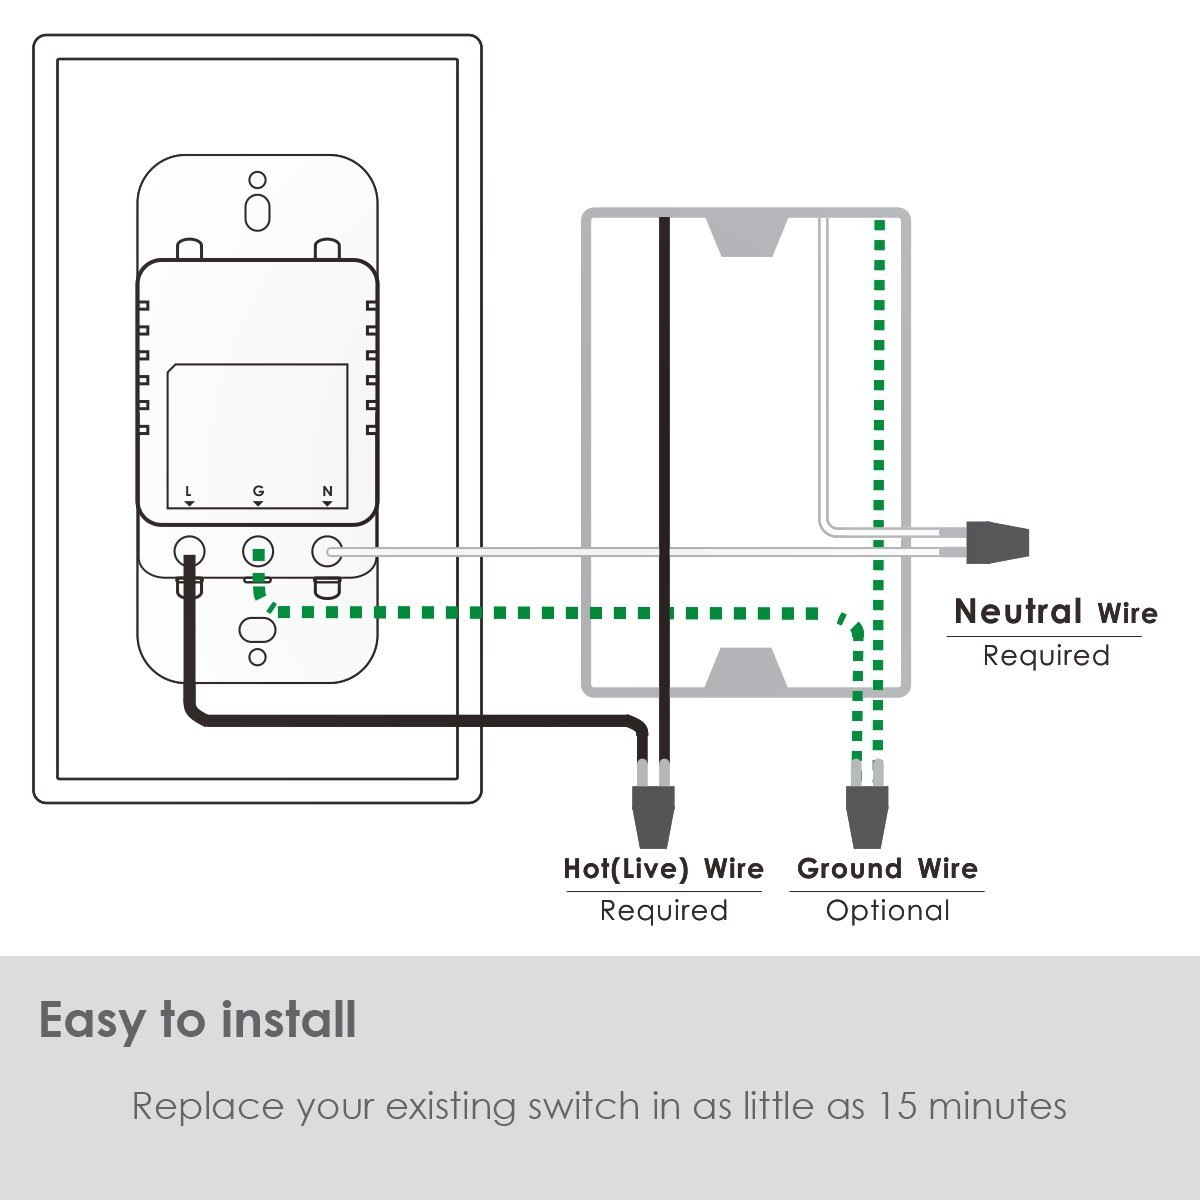 Smart Wall Outlet Kapok Wifi Top Bottom Outlets Are Easy Wiring Kitchen Schematics Independently Controllable Works With Alexa Google Assistant Ifttt No Hub Required